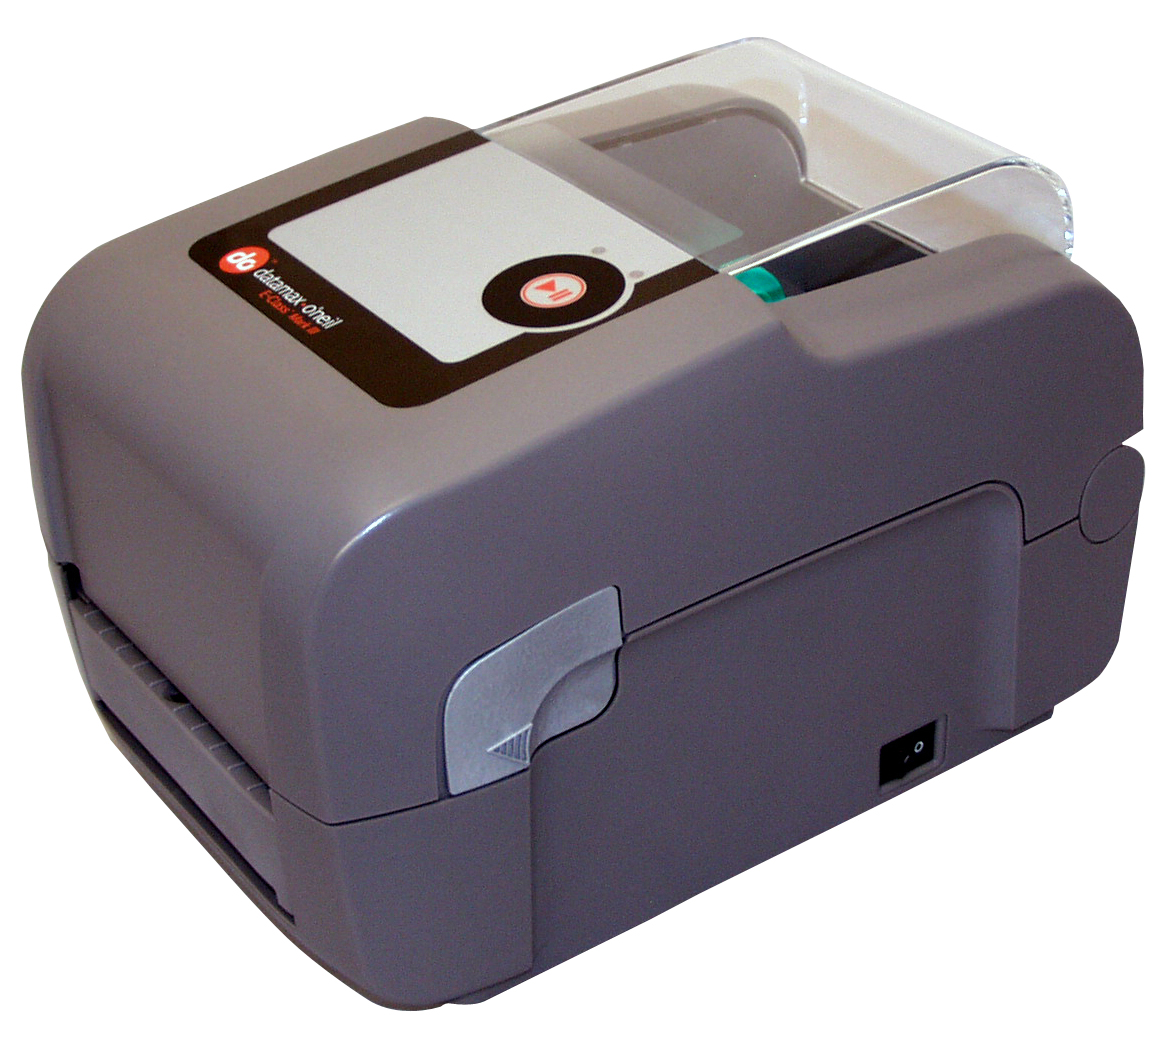 New Mark III E Class Printer